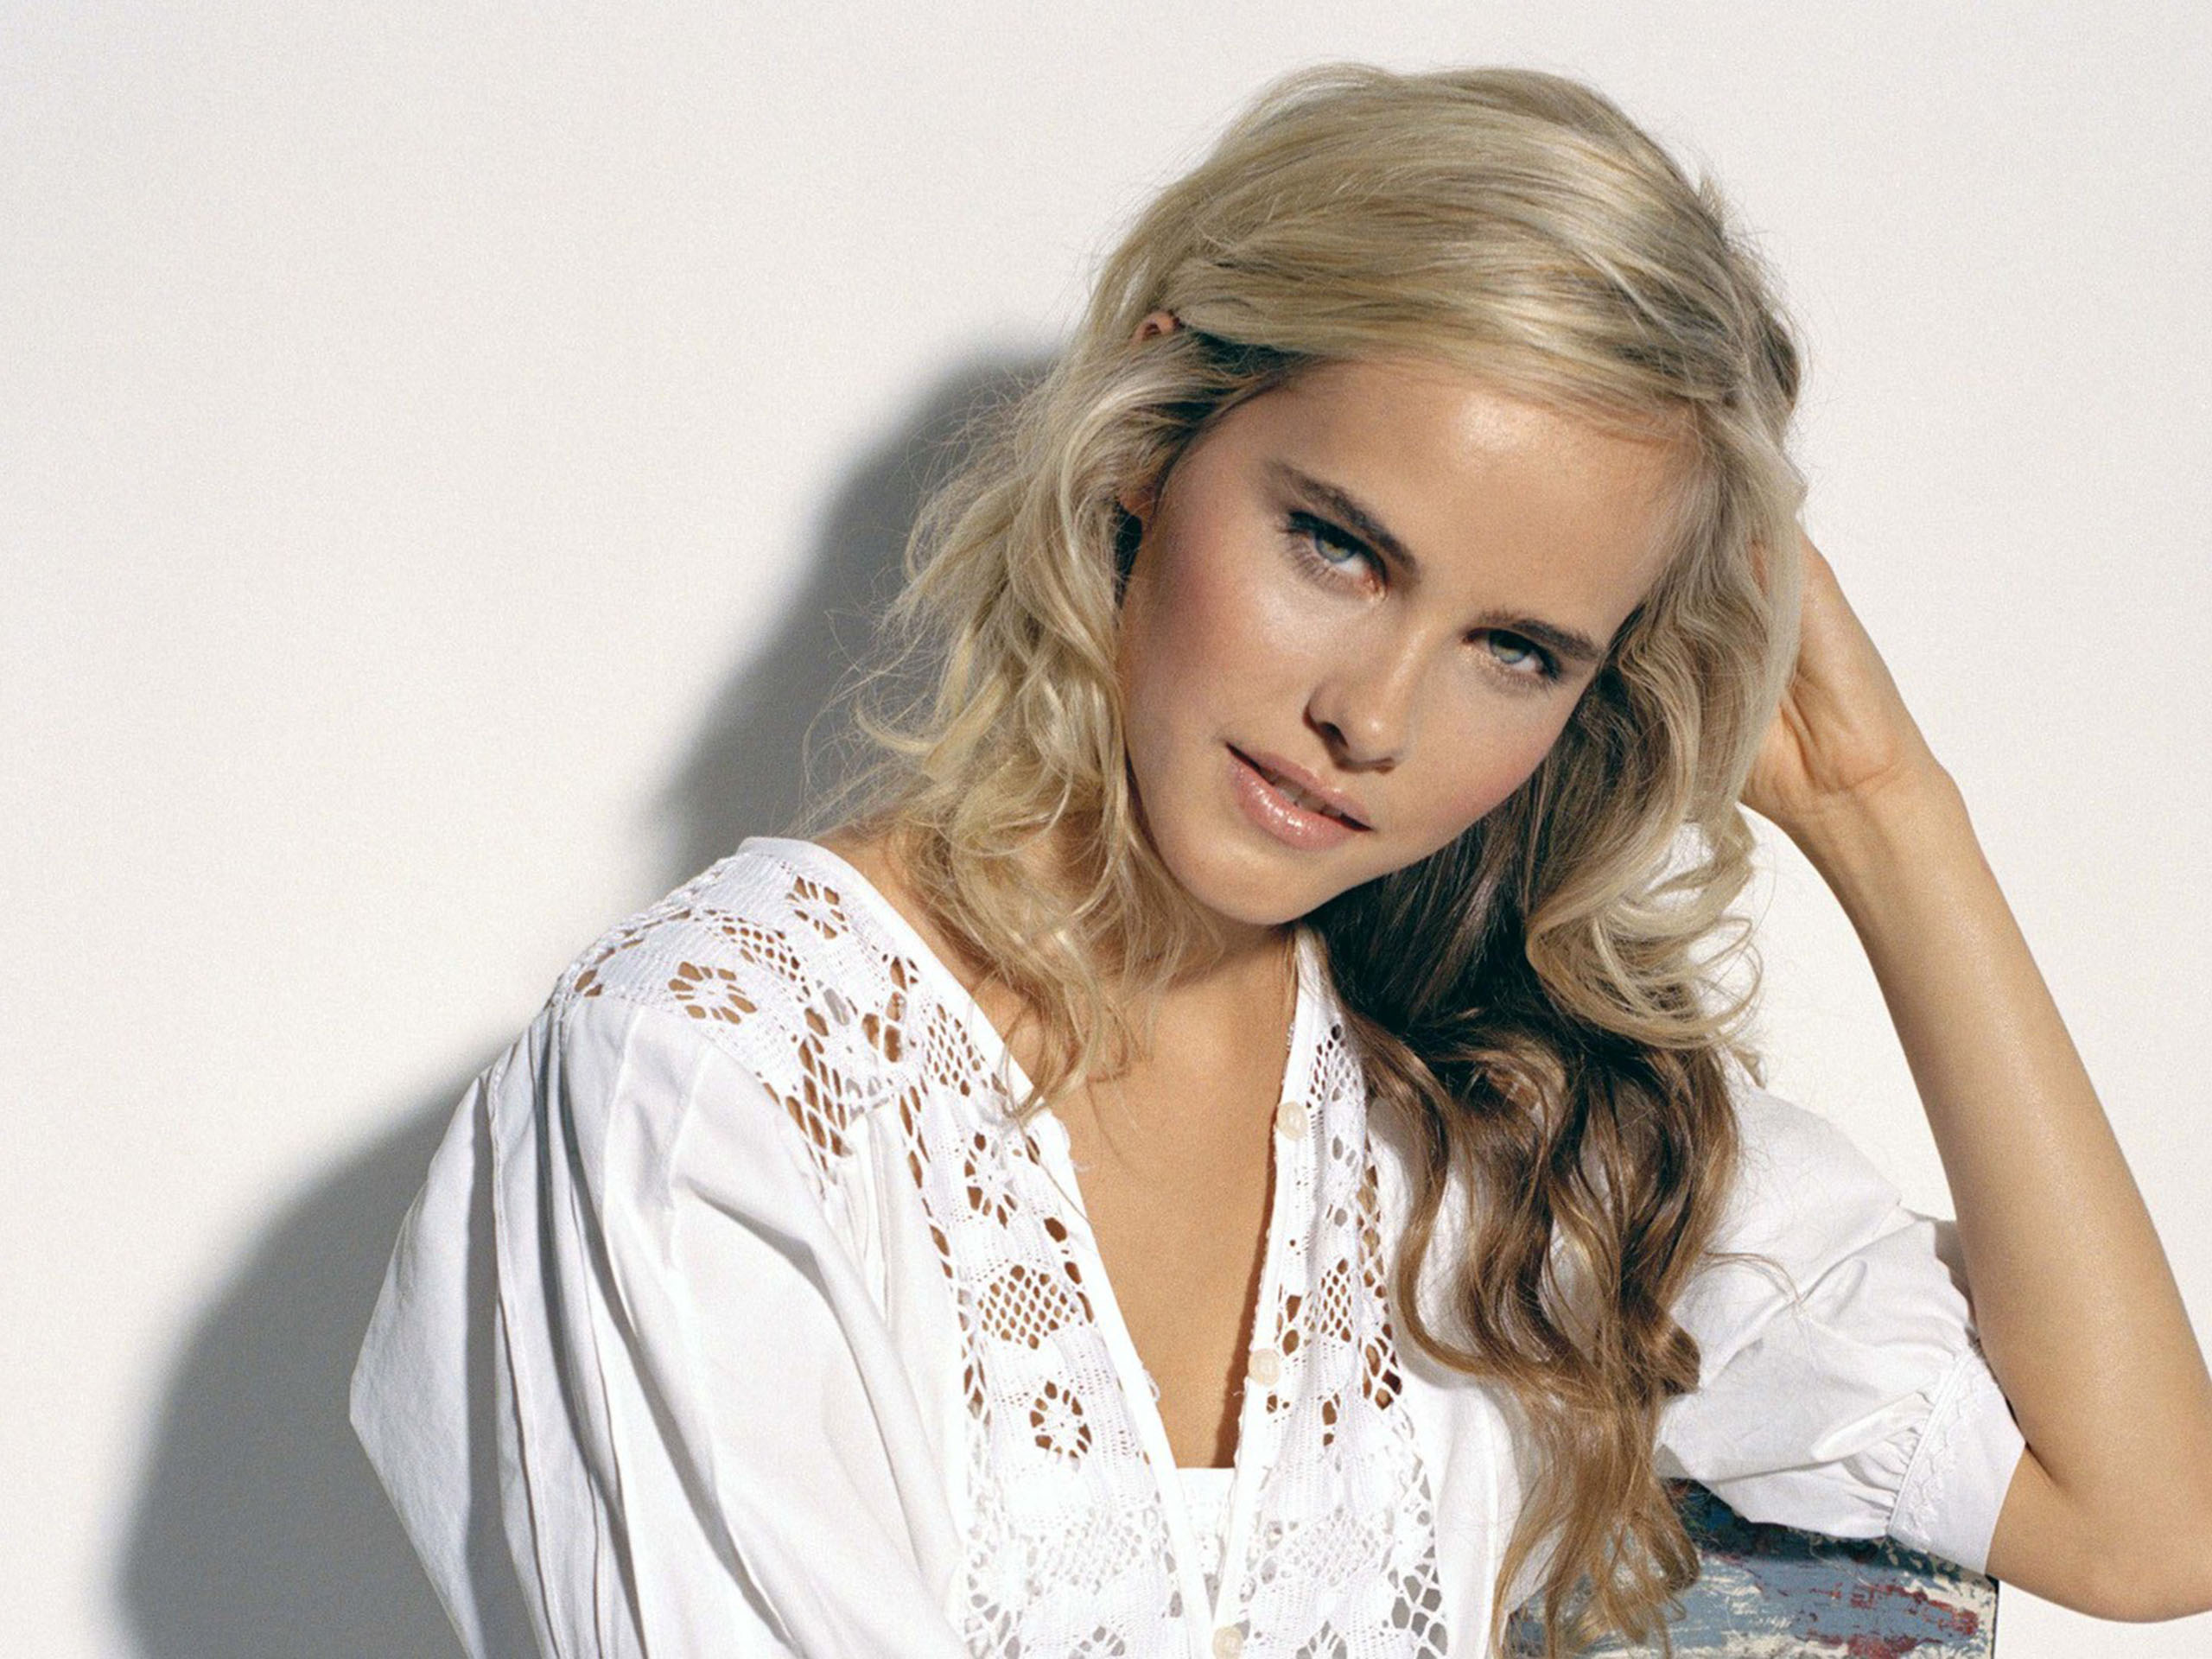 Isabel Lucas wallpaper 2560x1920 83017 2560x1920